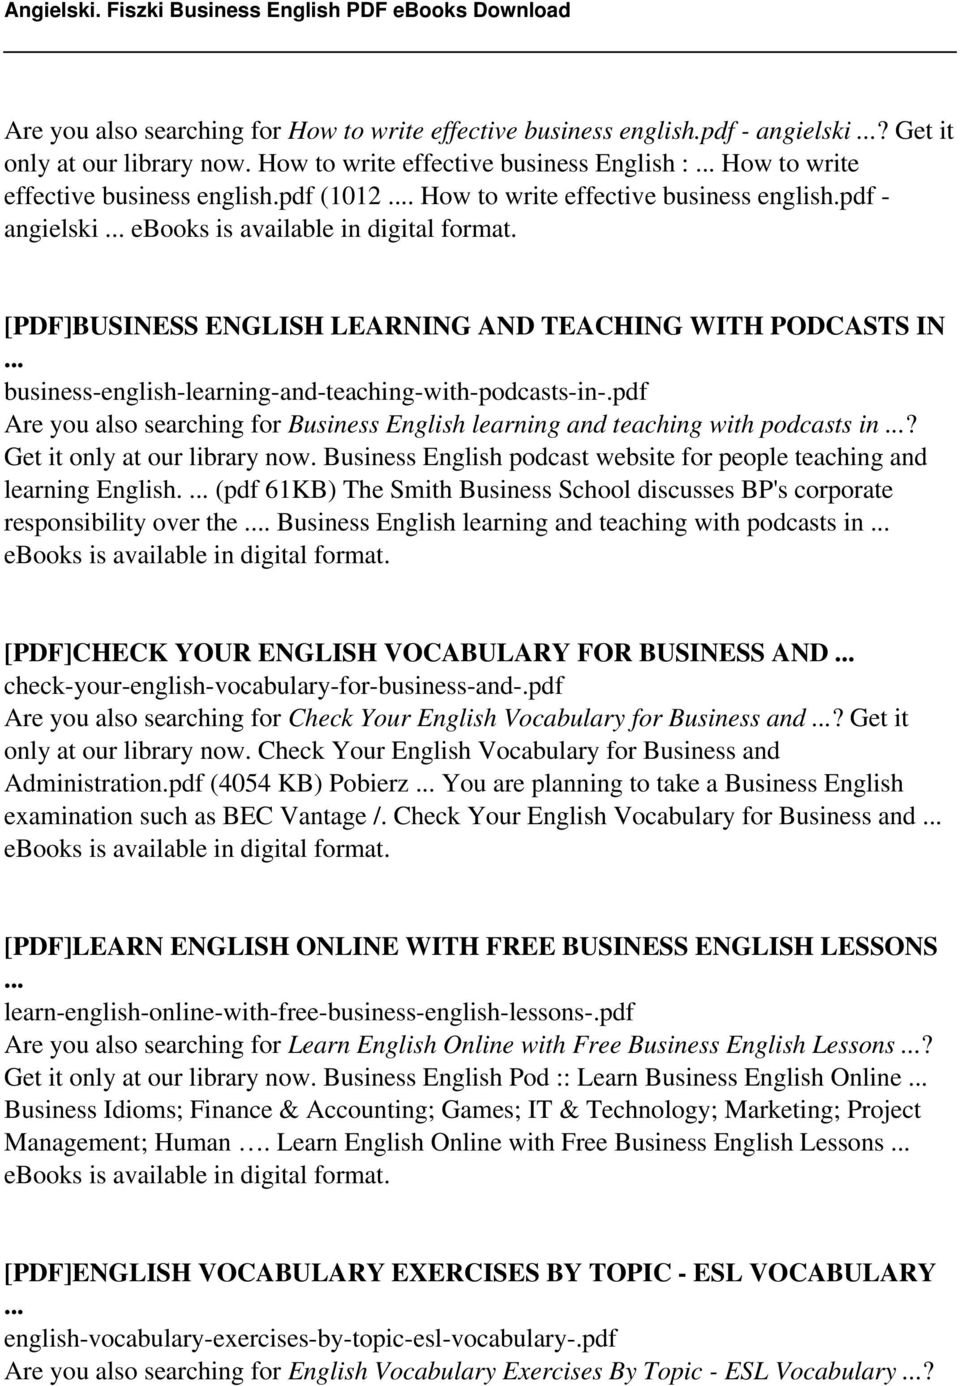 Angielski  Fiszki Business English - PDF